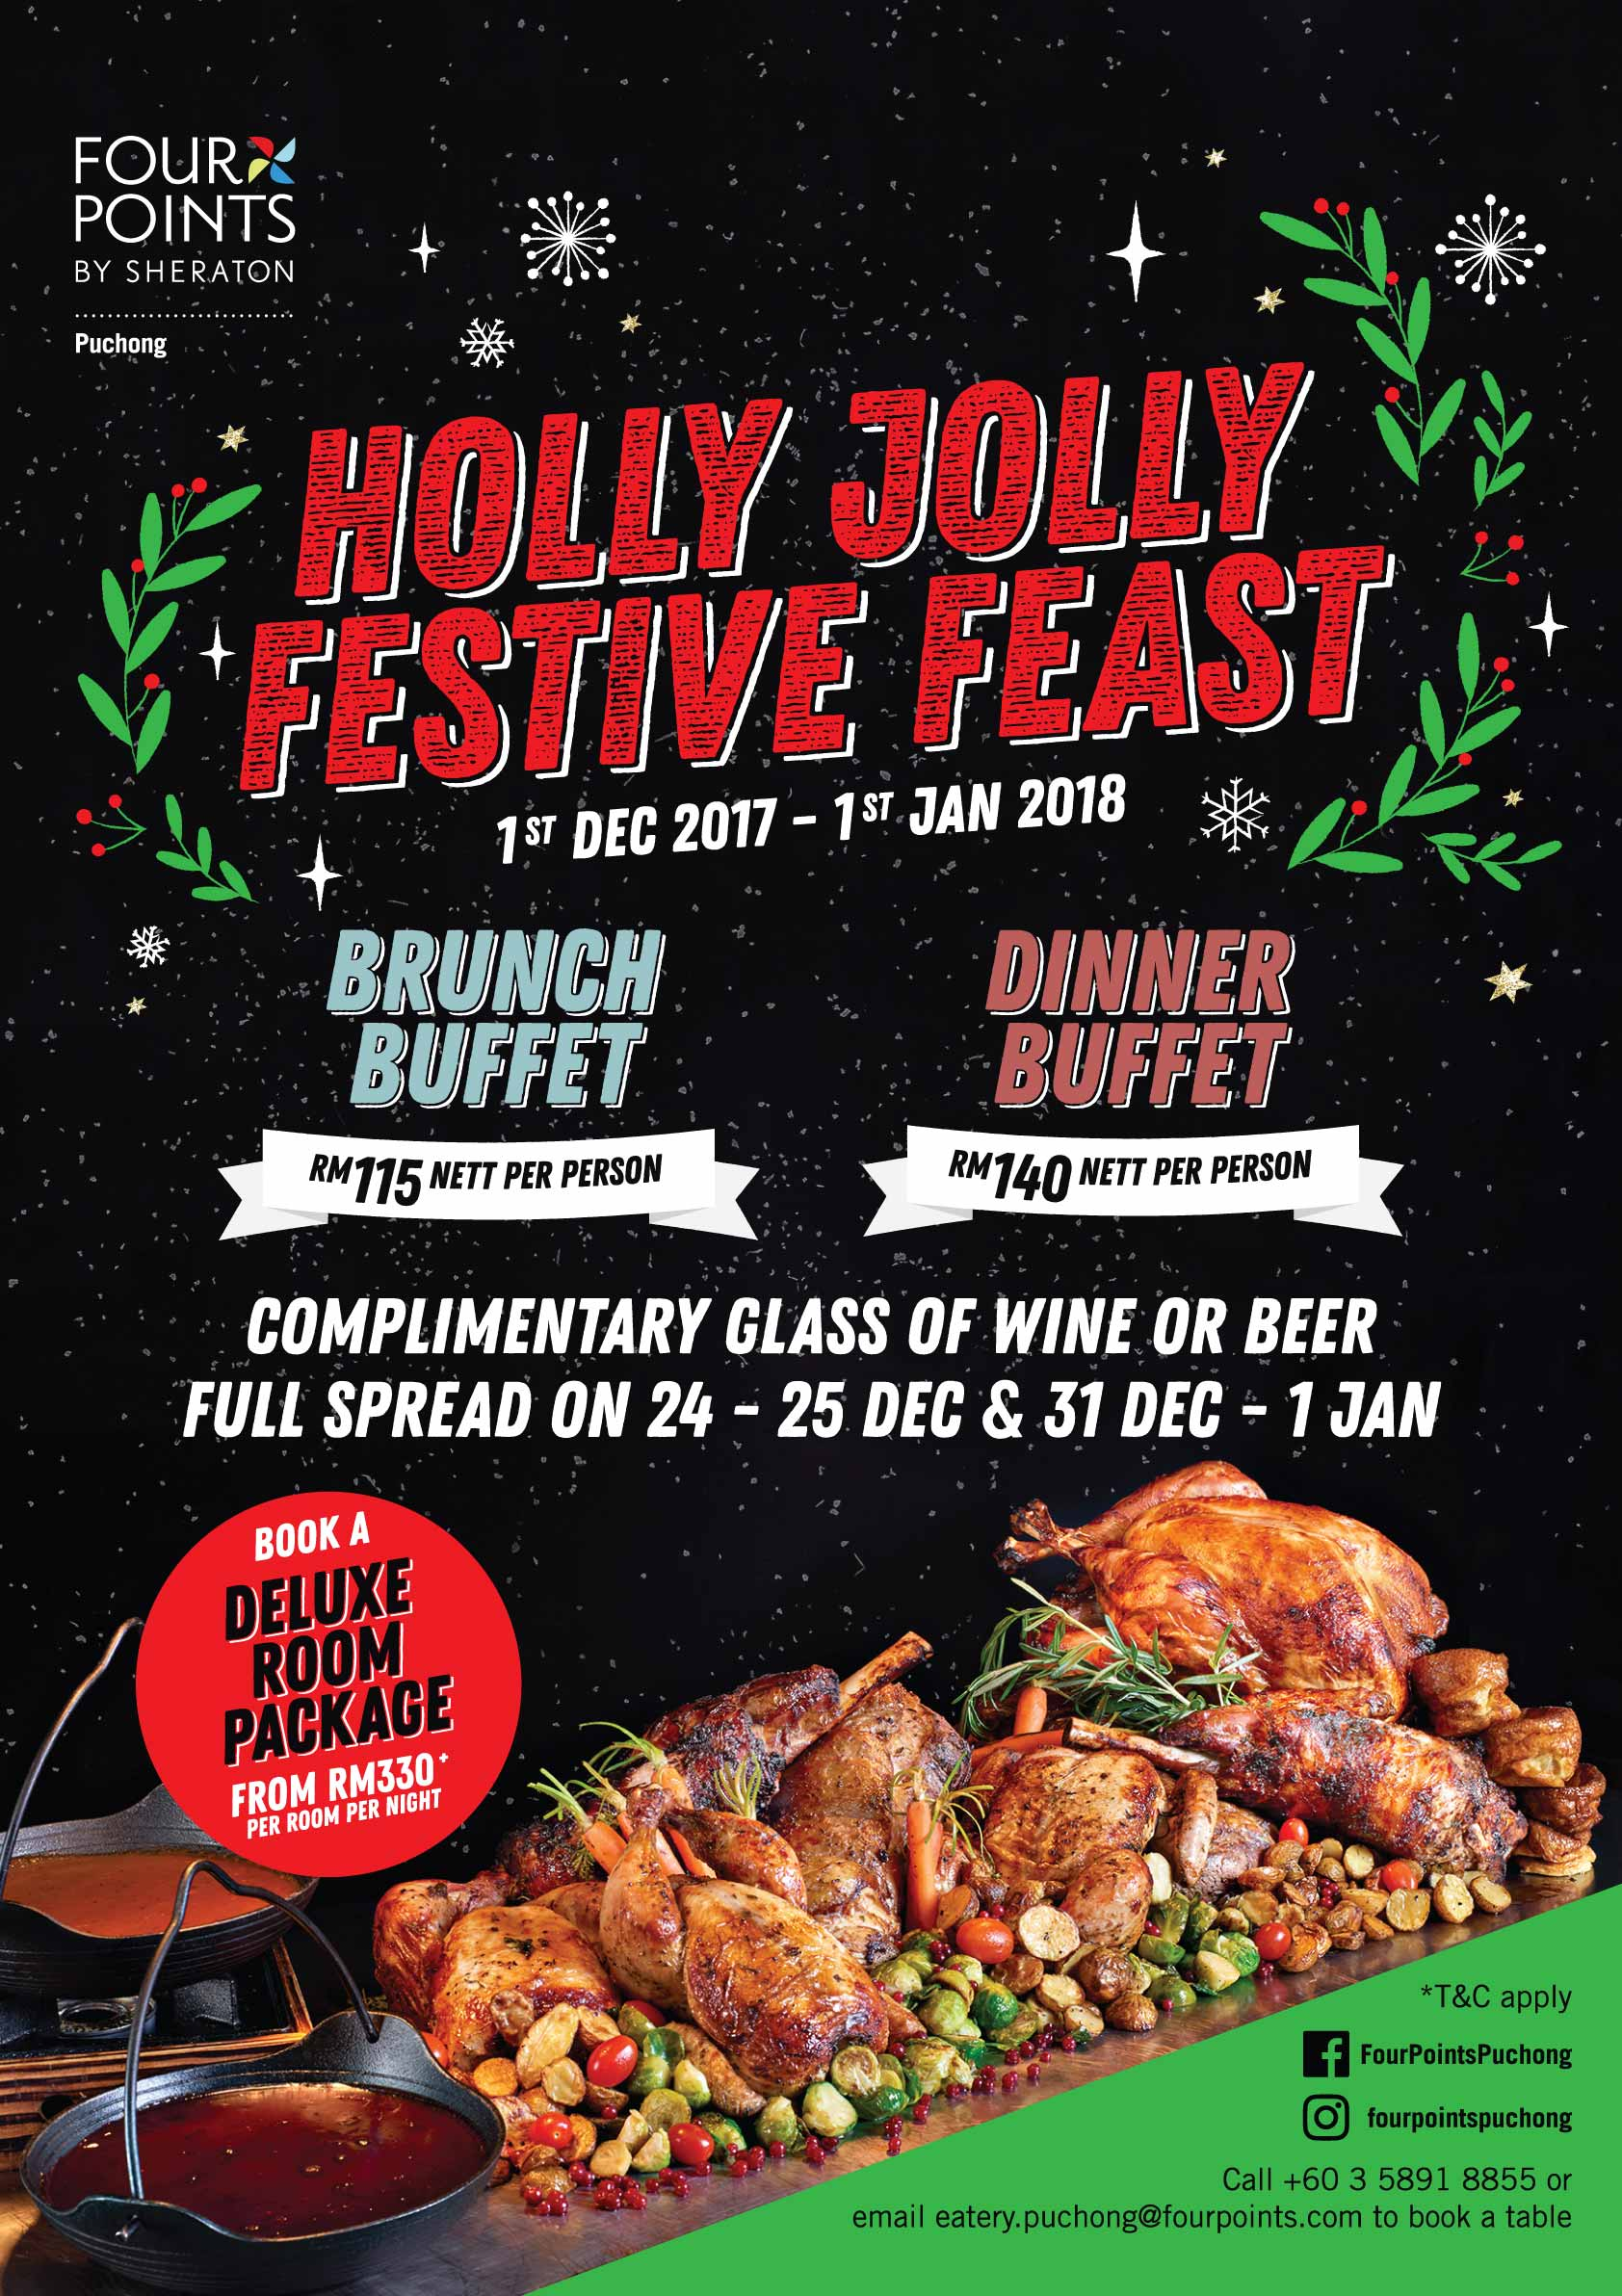 Holly Jolly Festive Feast